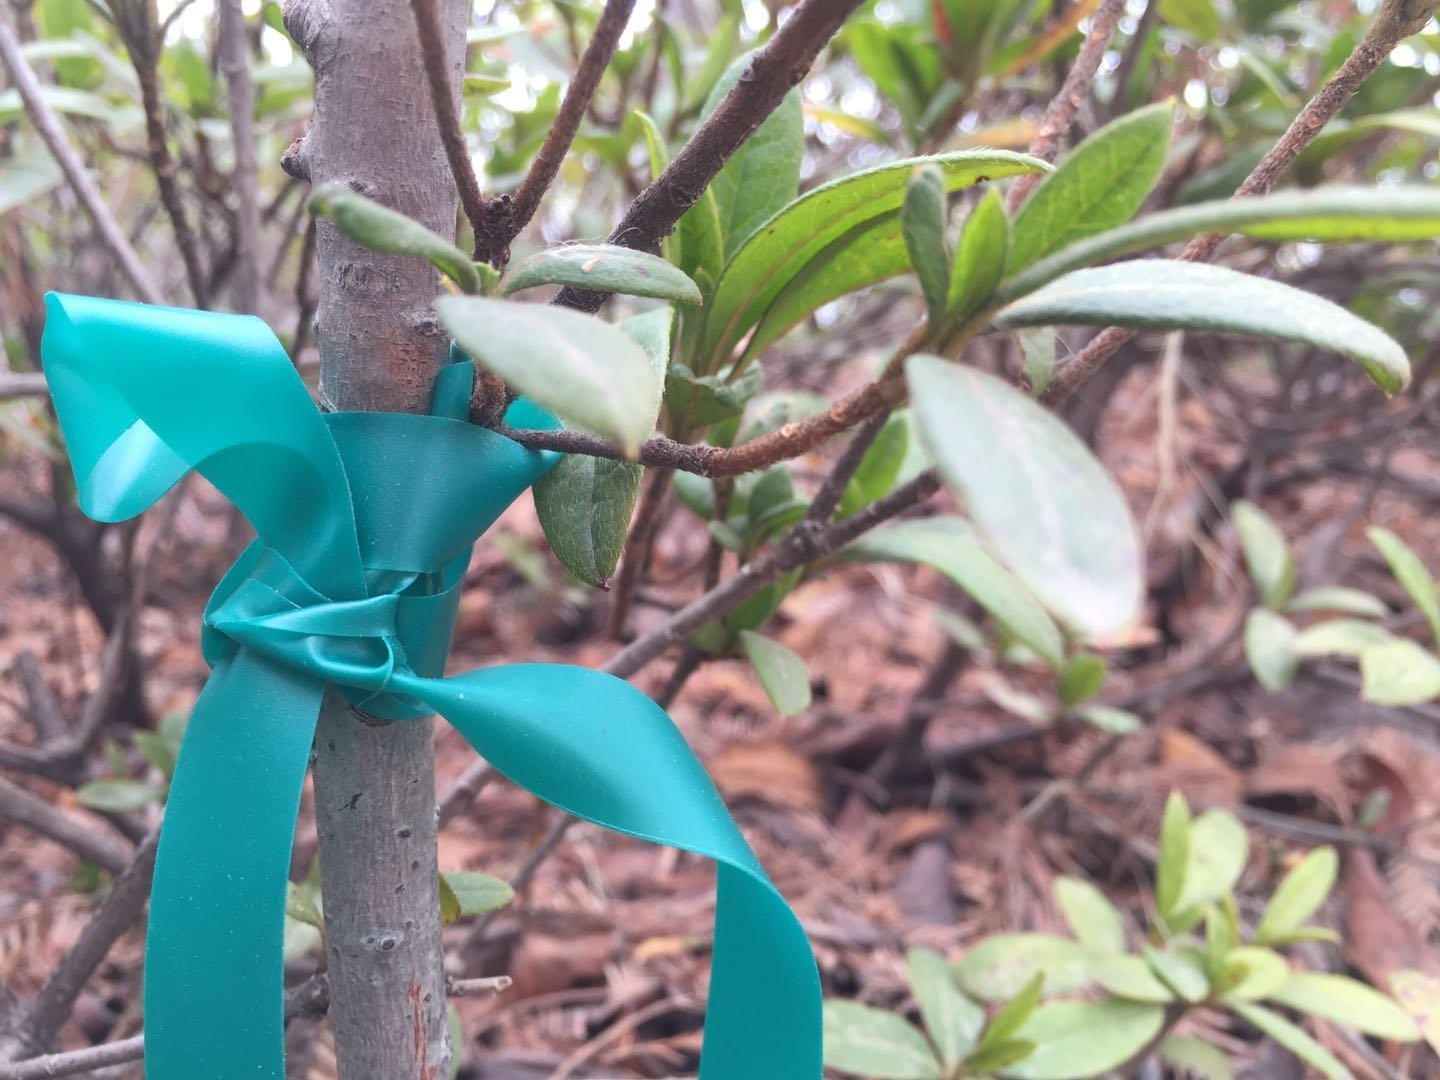 Wholesale Garden Strap PVC Roll Tape Tie Fruit Tree Secateurs Engraft Branch Stake Bind Wide Belt Tools for Graft Plant